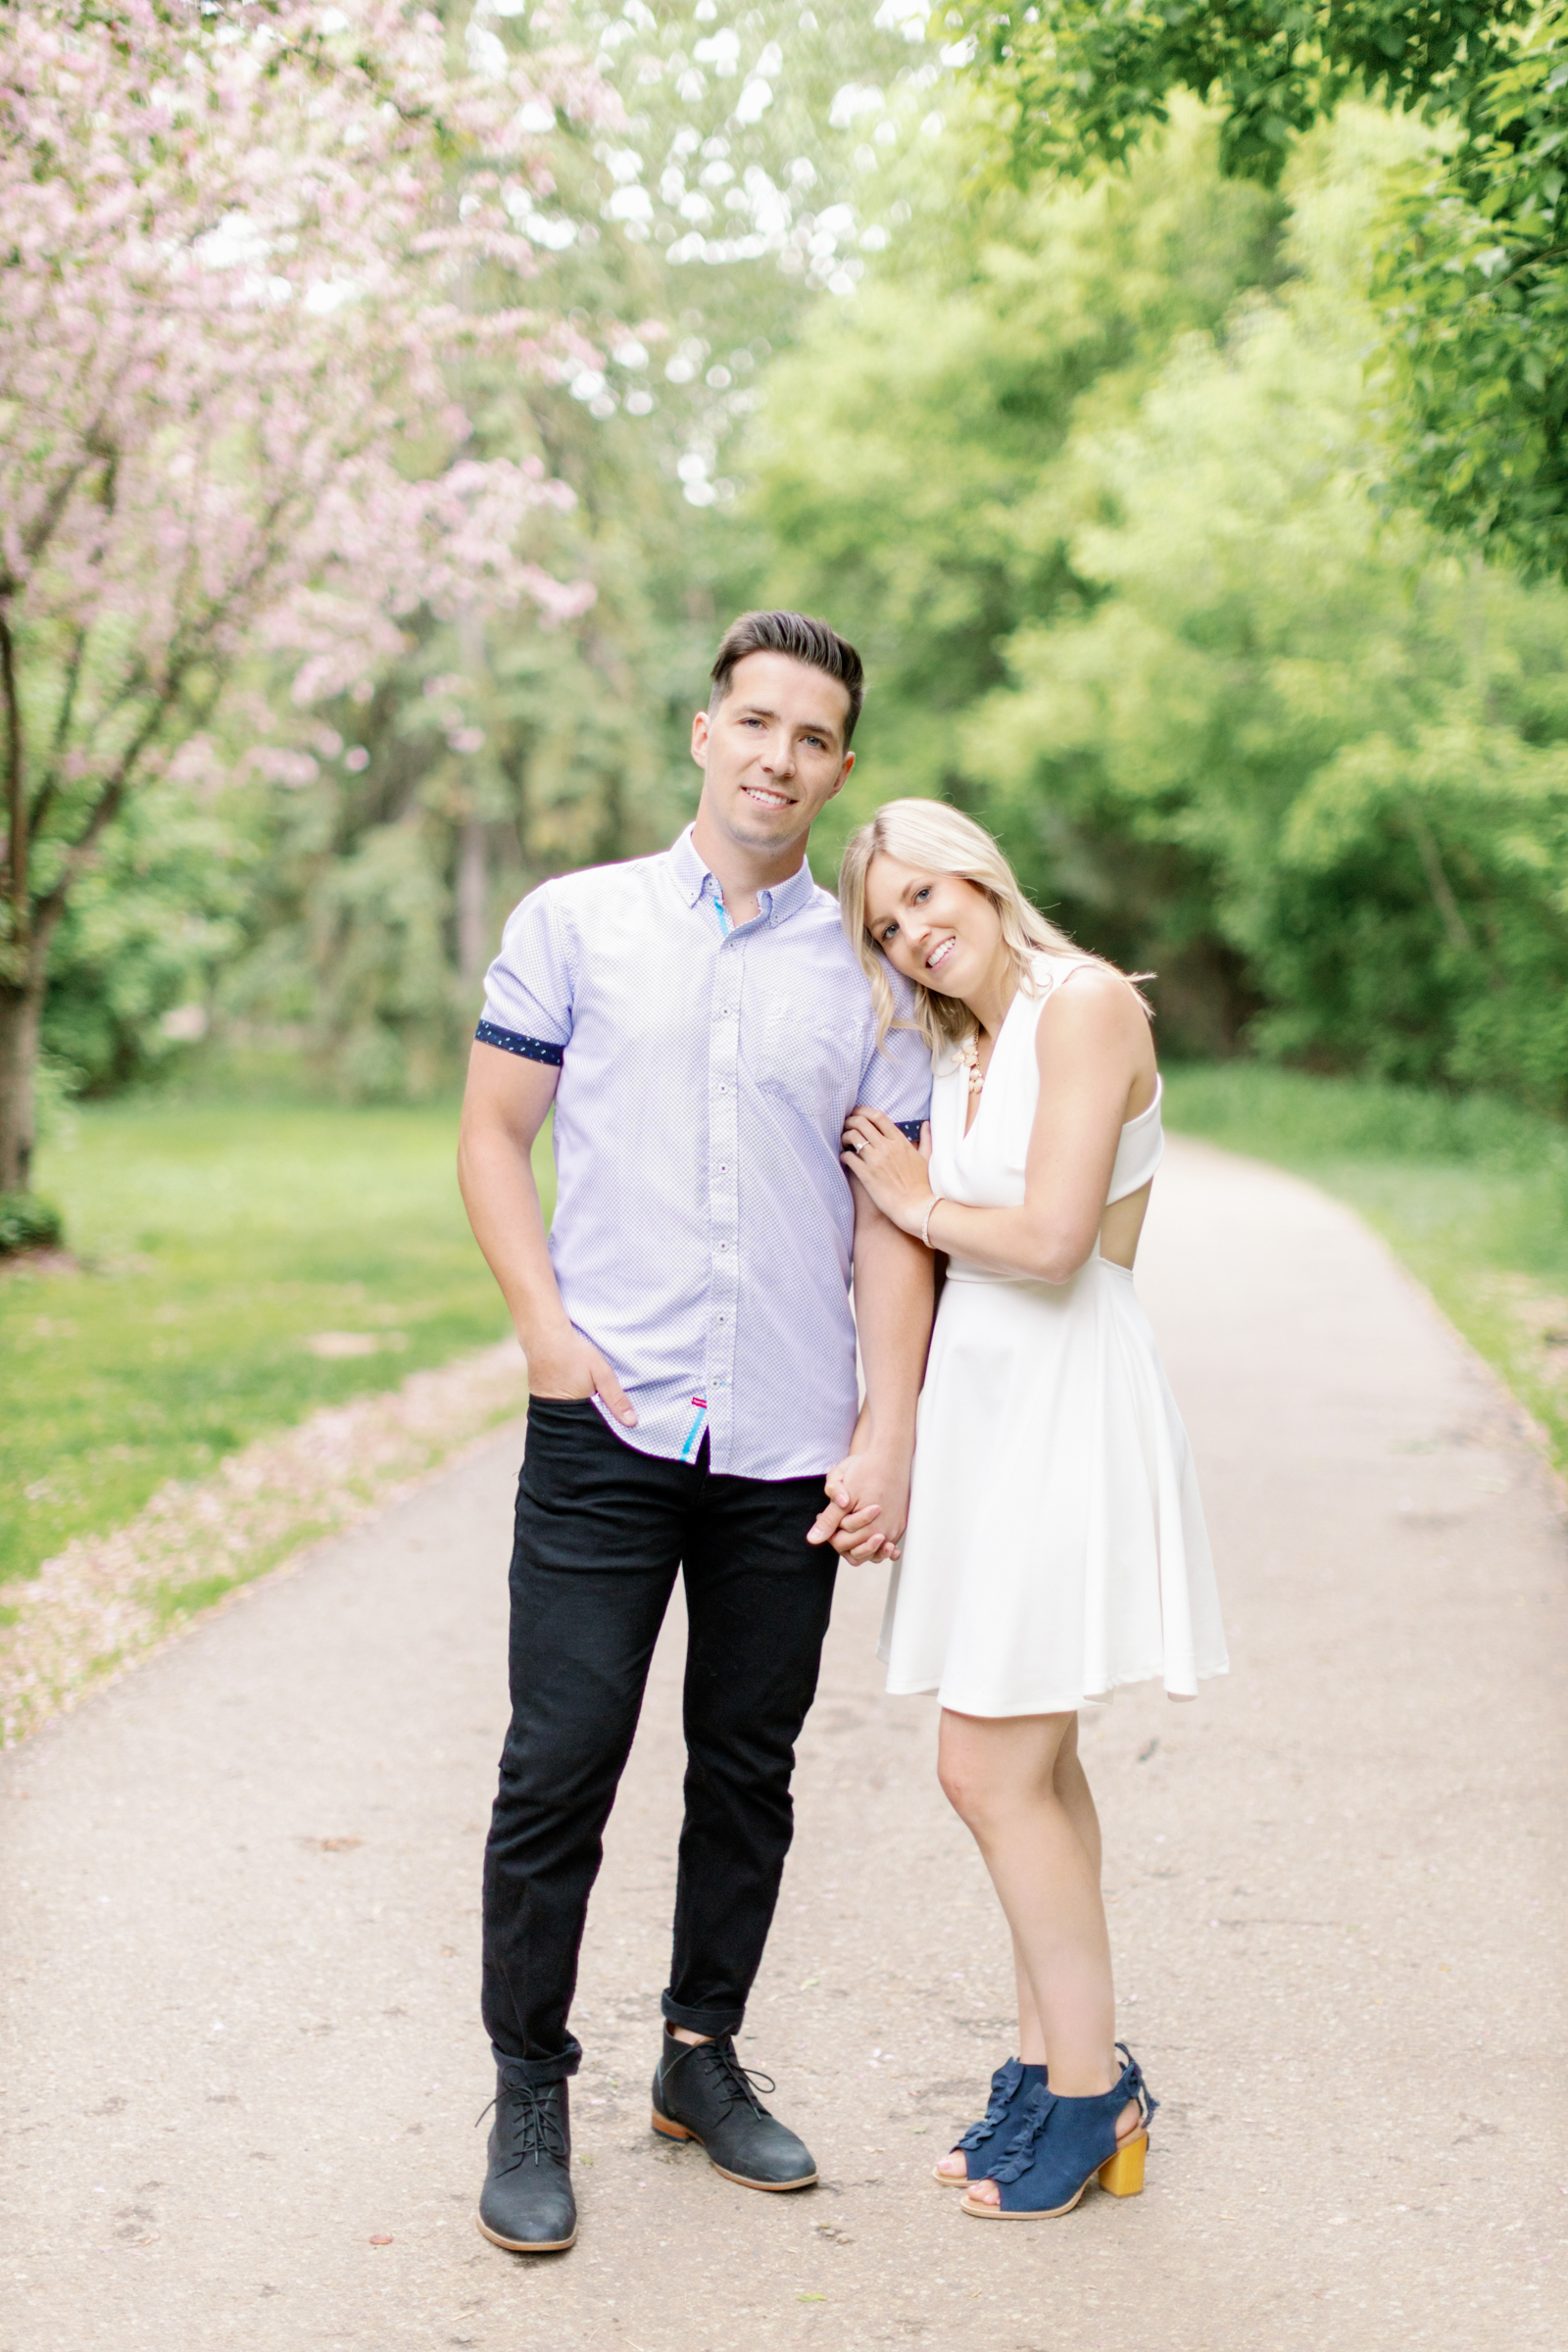 Lean on his shoulder during engagement session